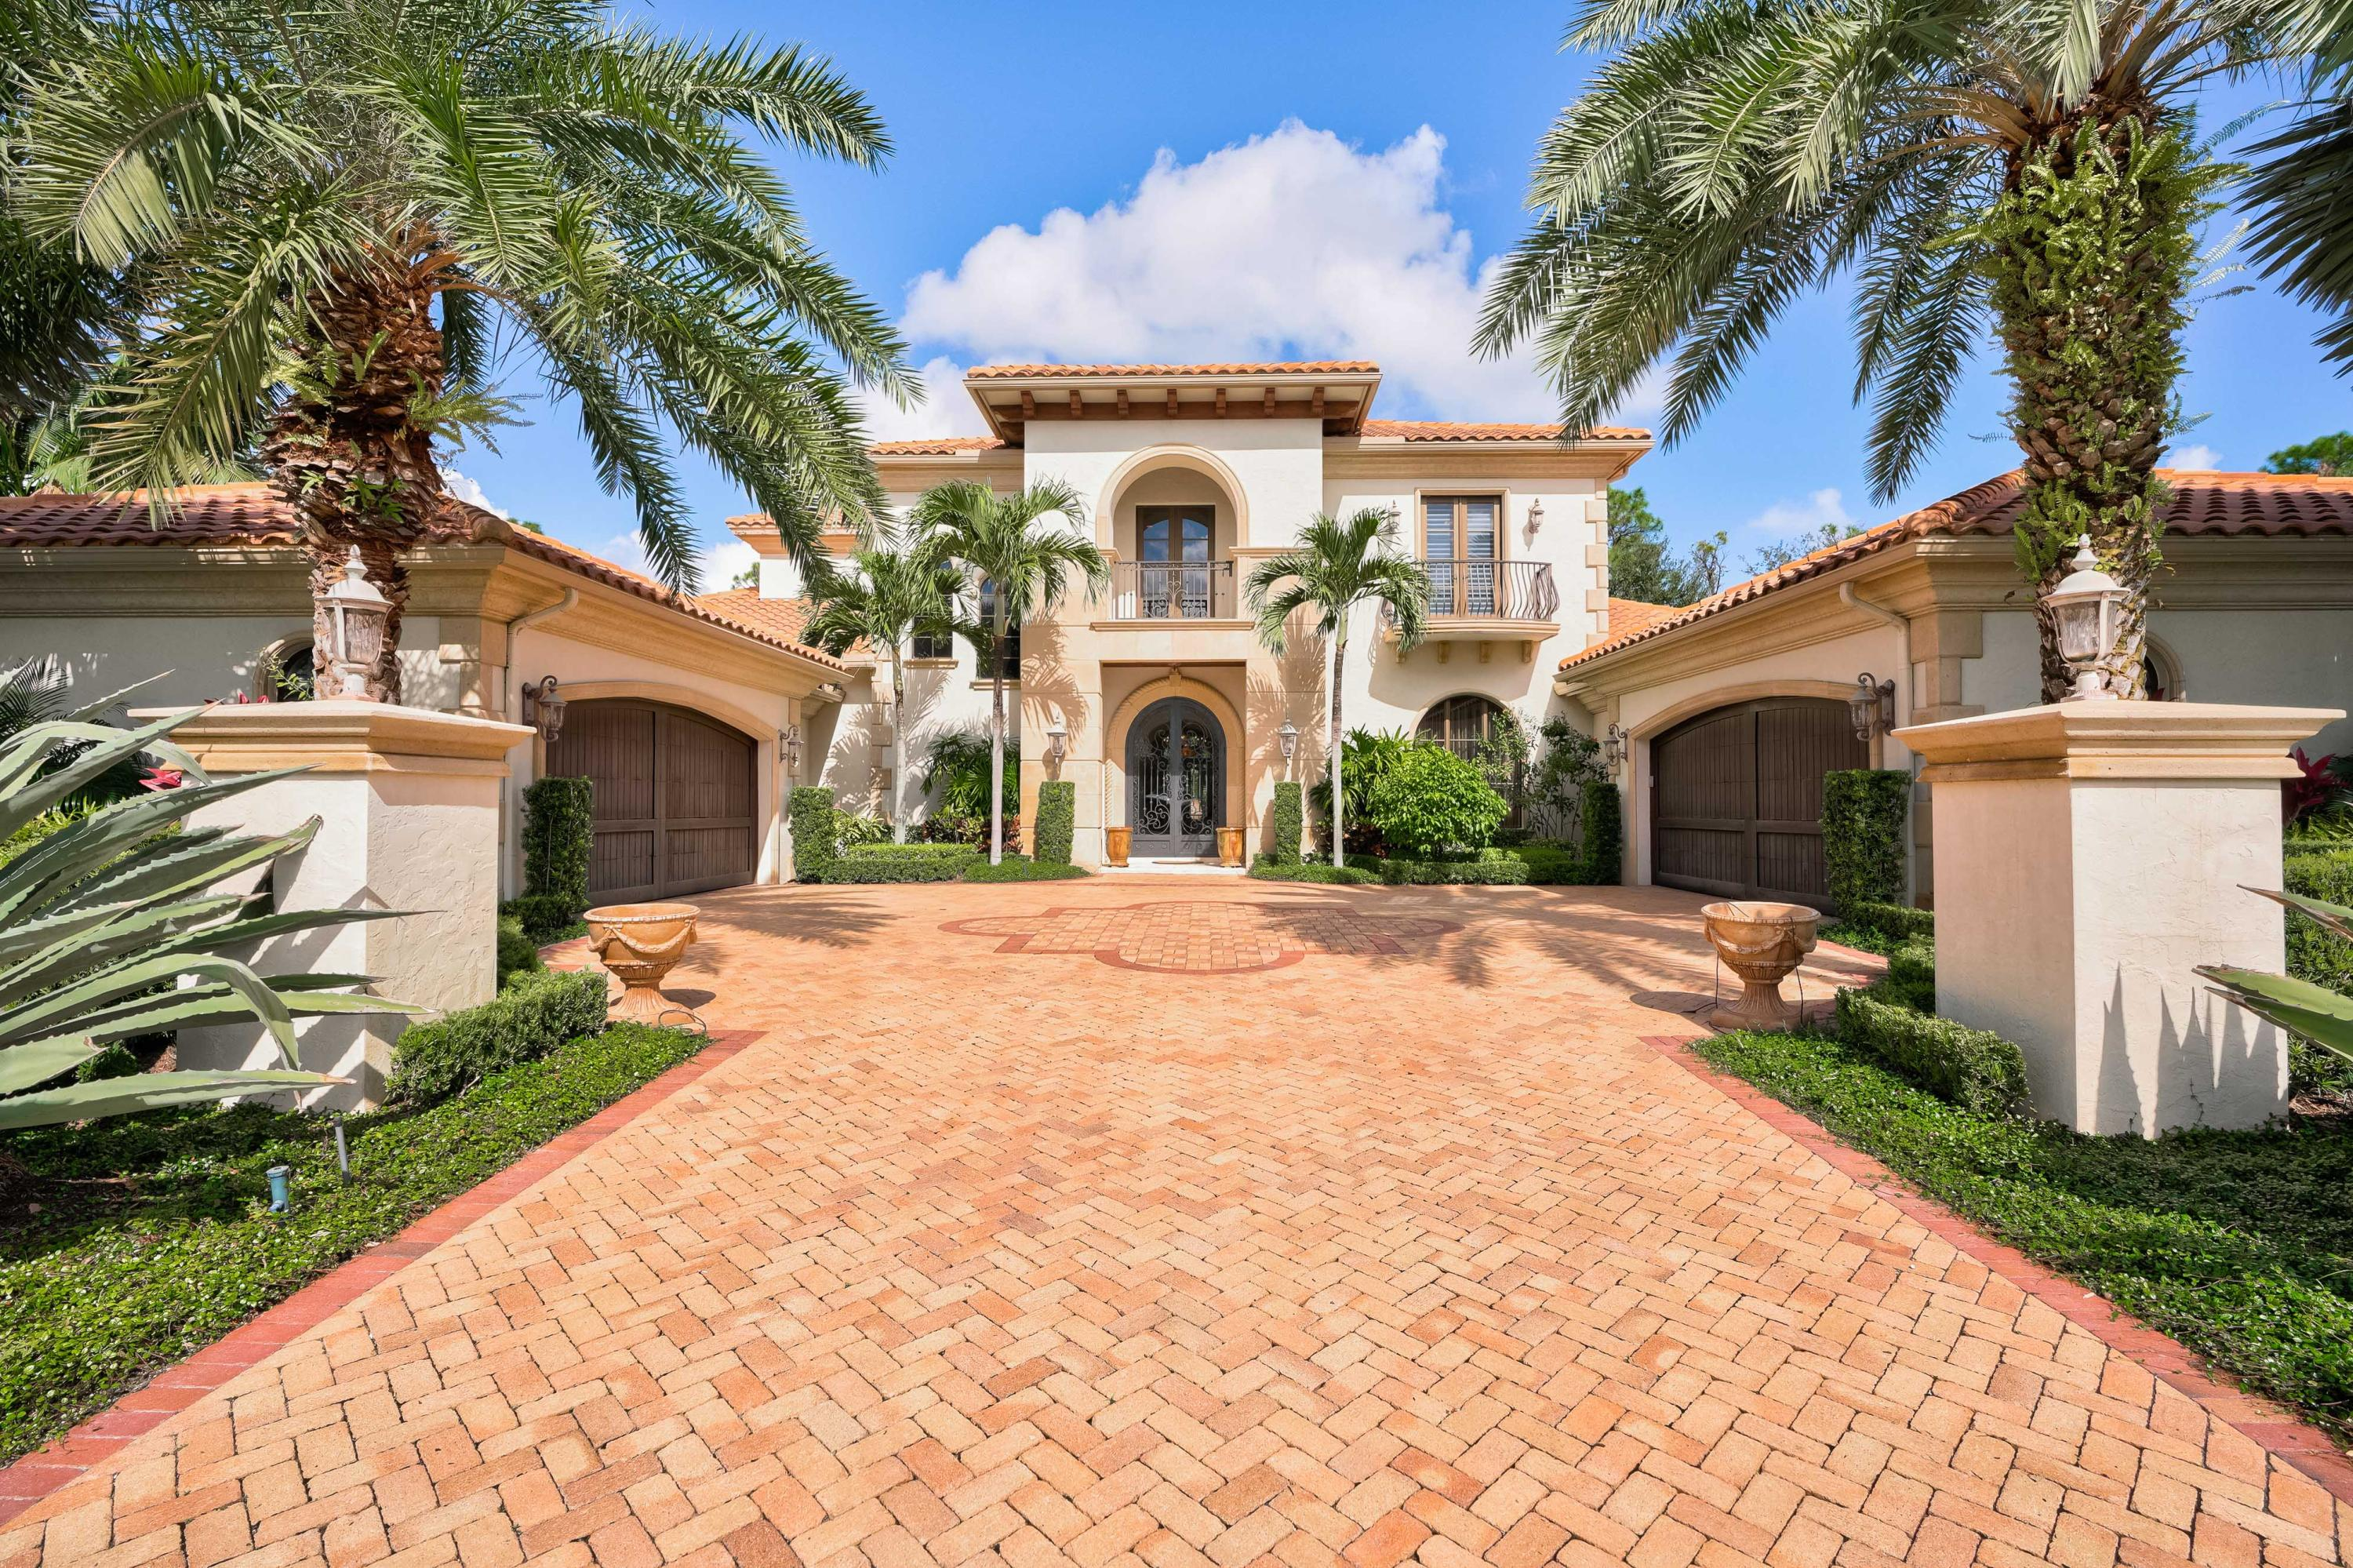 New Home for sale at 107 Via Palacio  in Palm Beach Gardens